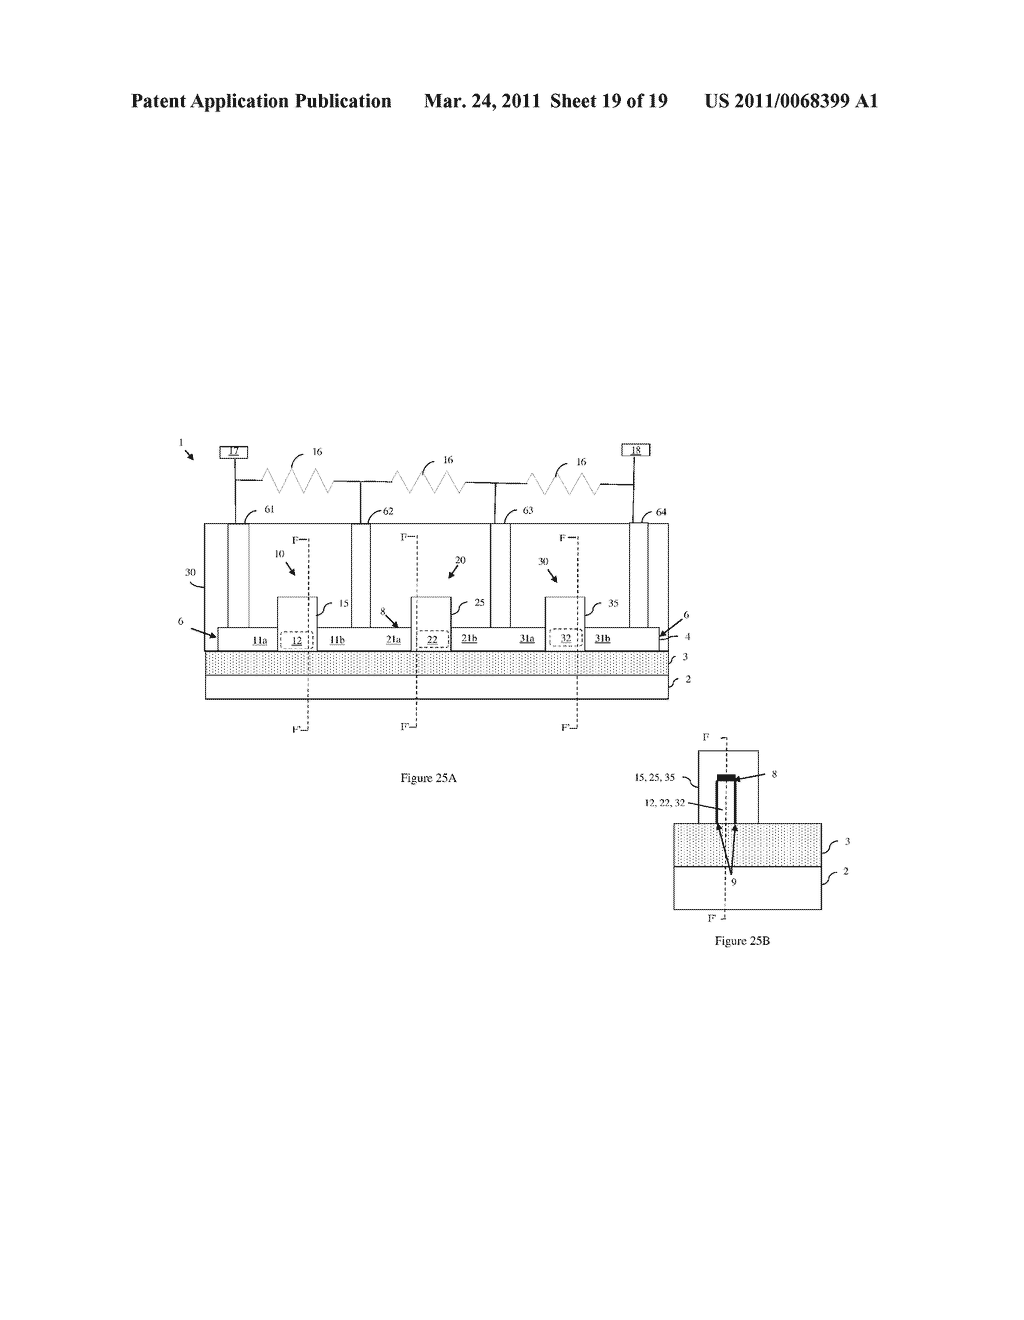 INTEGRATED CIRCUIT DEVICE WITH SERIES-CONNECTED FIELD EFFECT TRANSISTORS AND INTEGRATED VOLTAGE EQUALIZATION AND METHOD OF FORMING THE DEVICE - diagram, schematic, and image 20